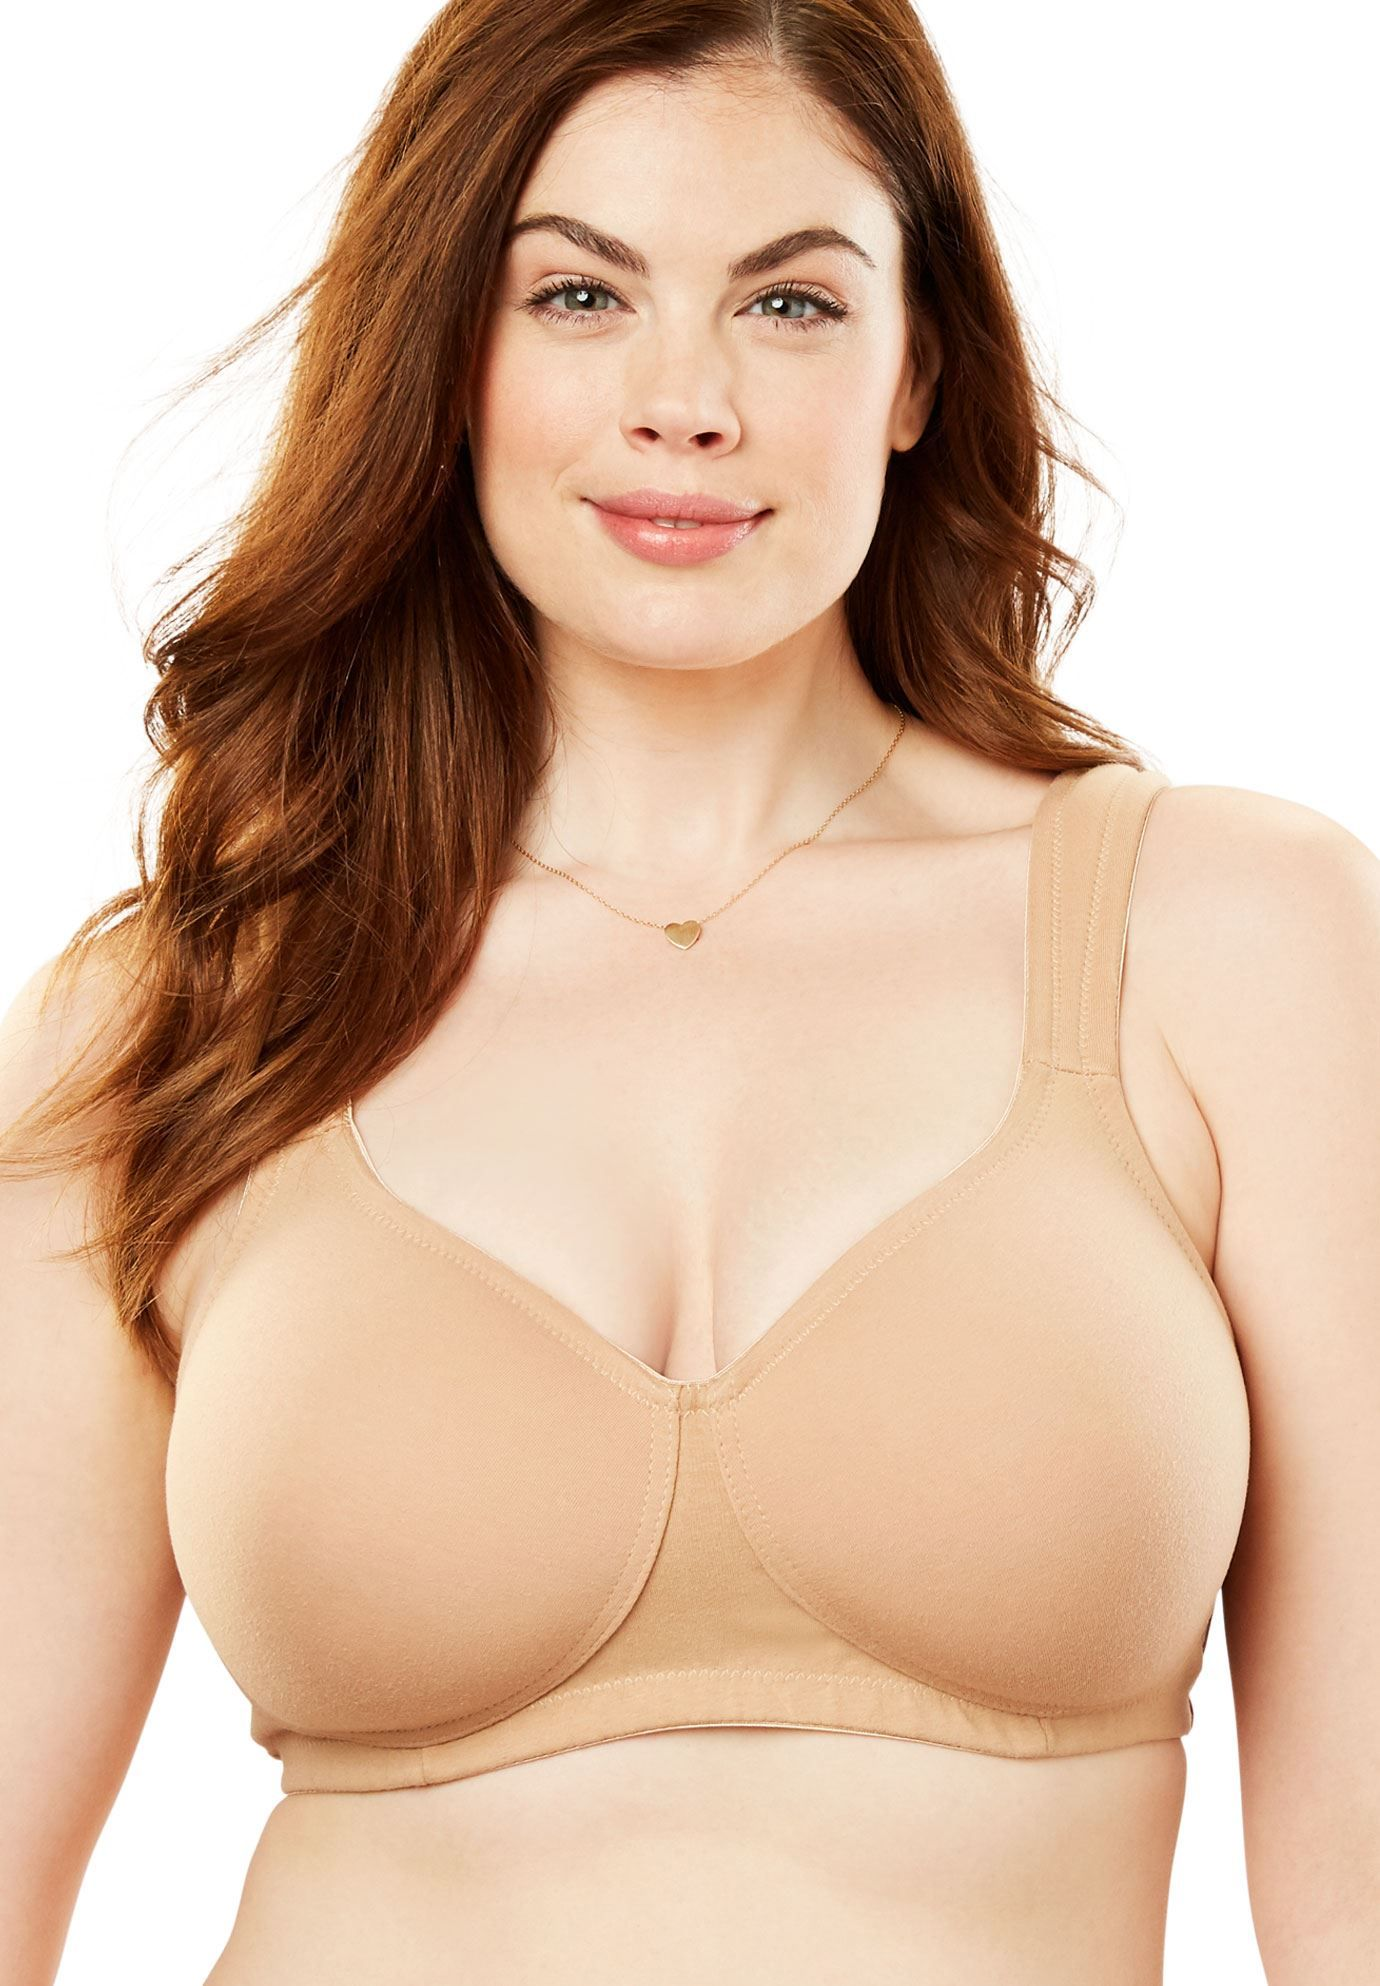 610a4b55f Wireless Cotton T-Shirt Bra by Comfort Choice - Women s Plus Size Clothing